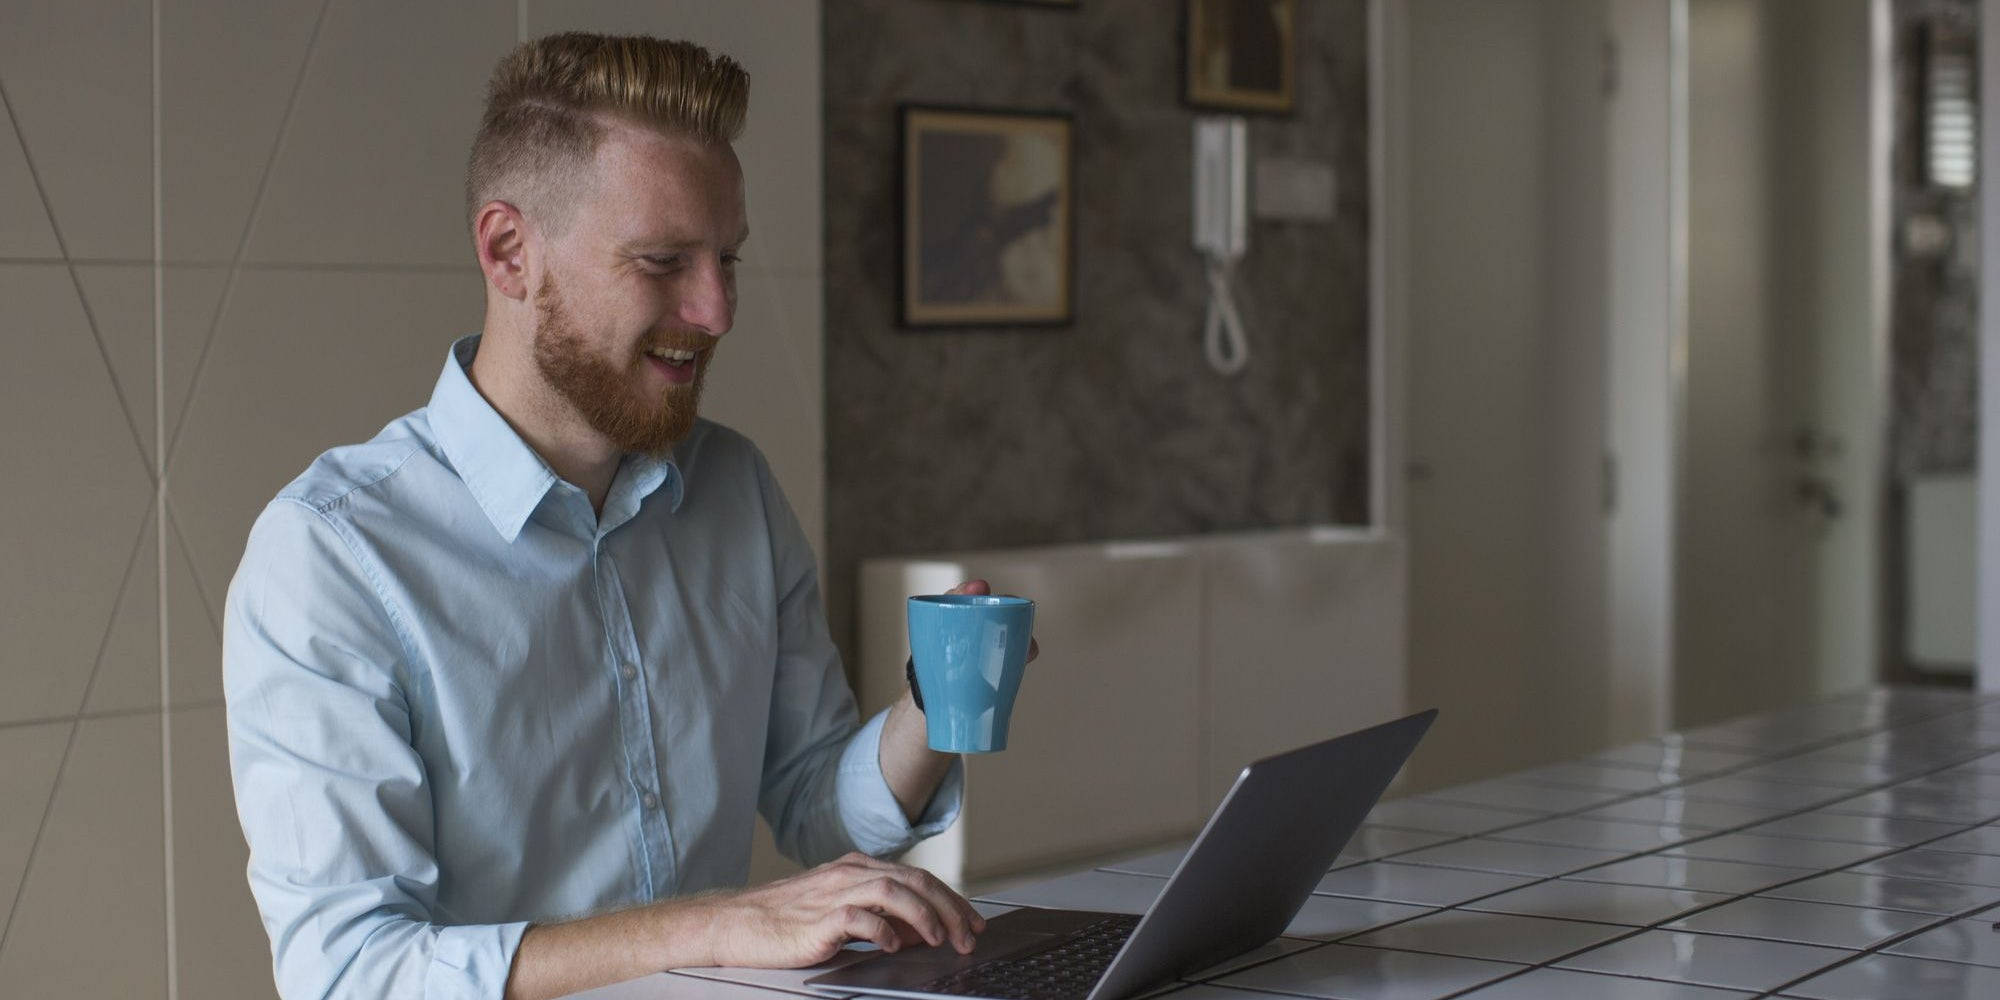 11 Best Websites to Find Freelance Jobs and Make Extra Money